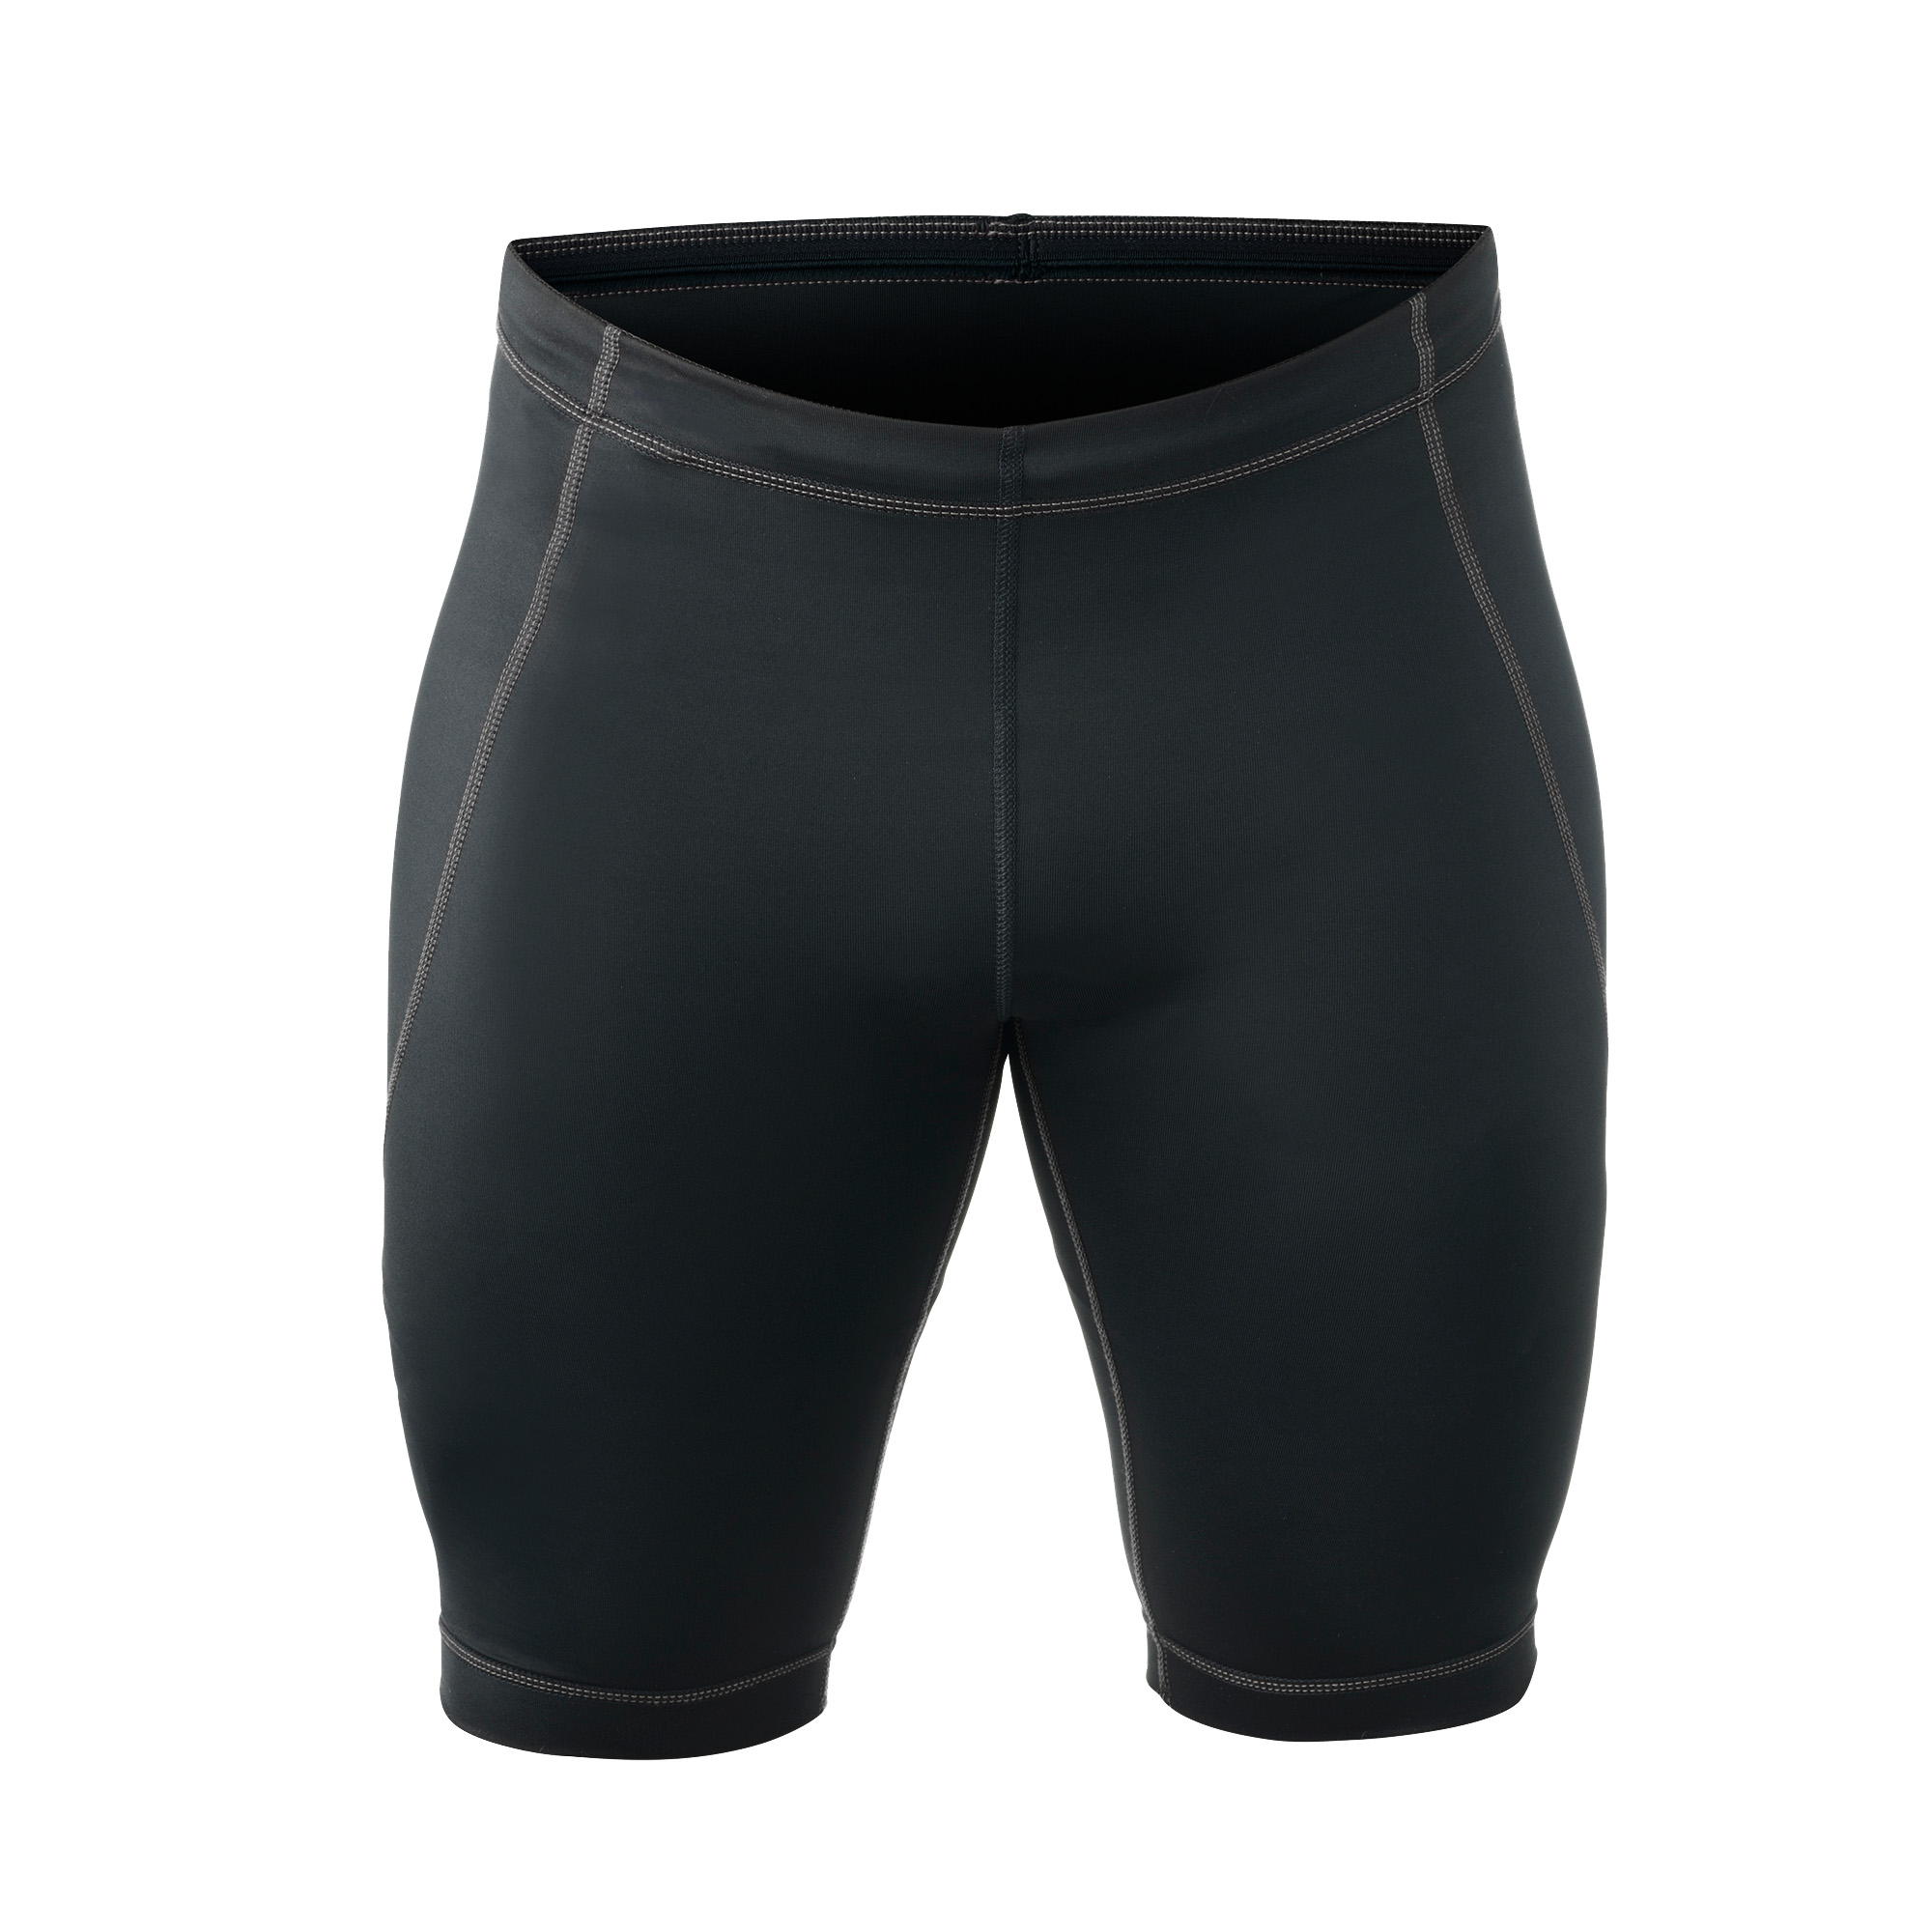 Rehband QD Compressie Shorts - Heren - Zwart - XL